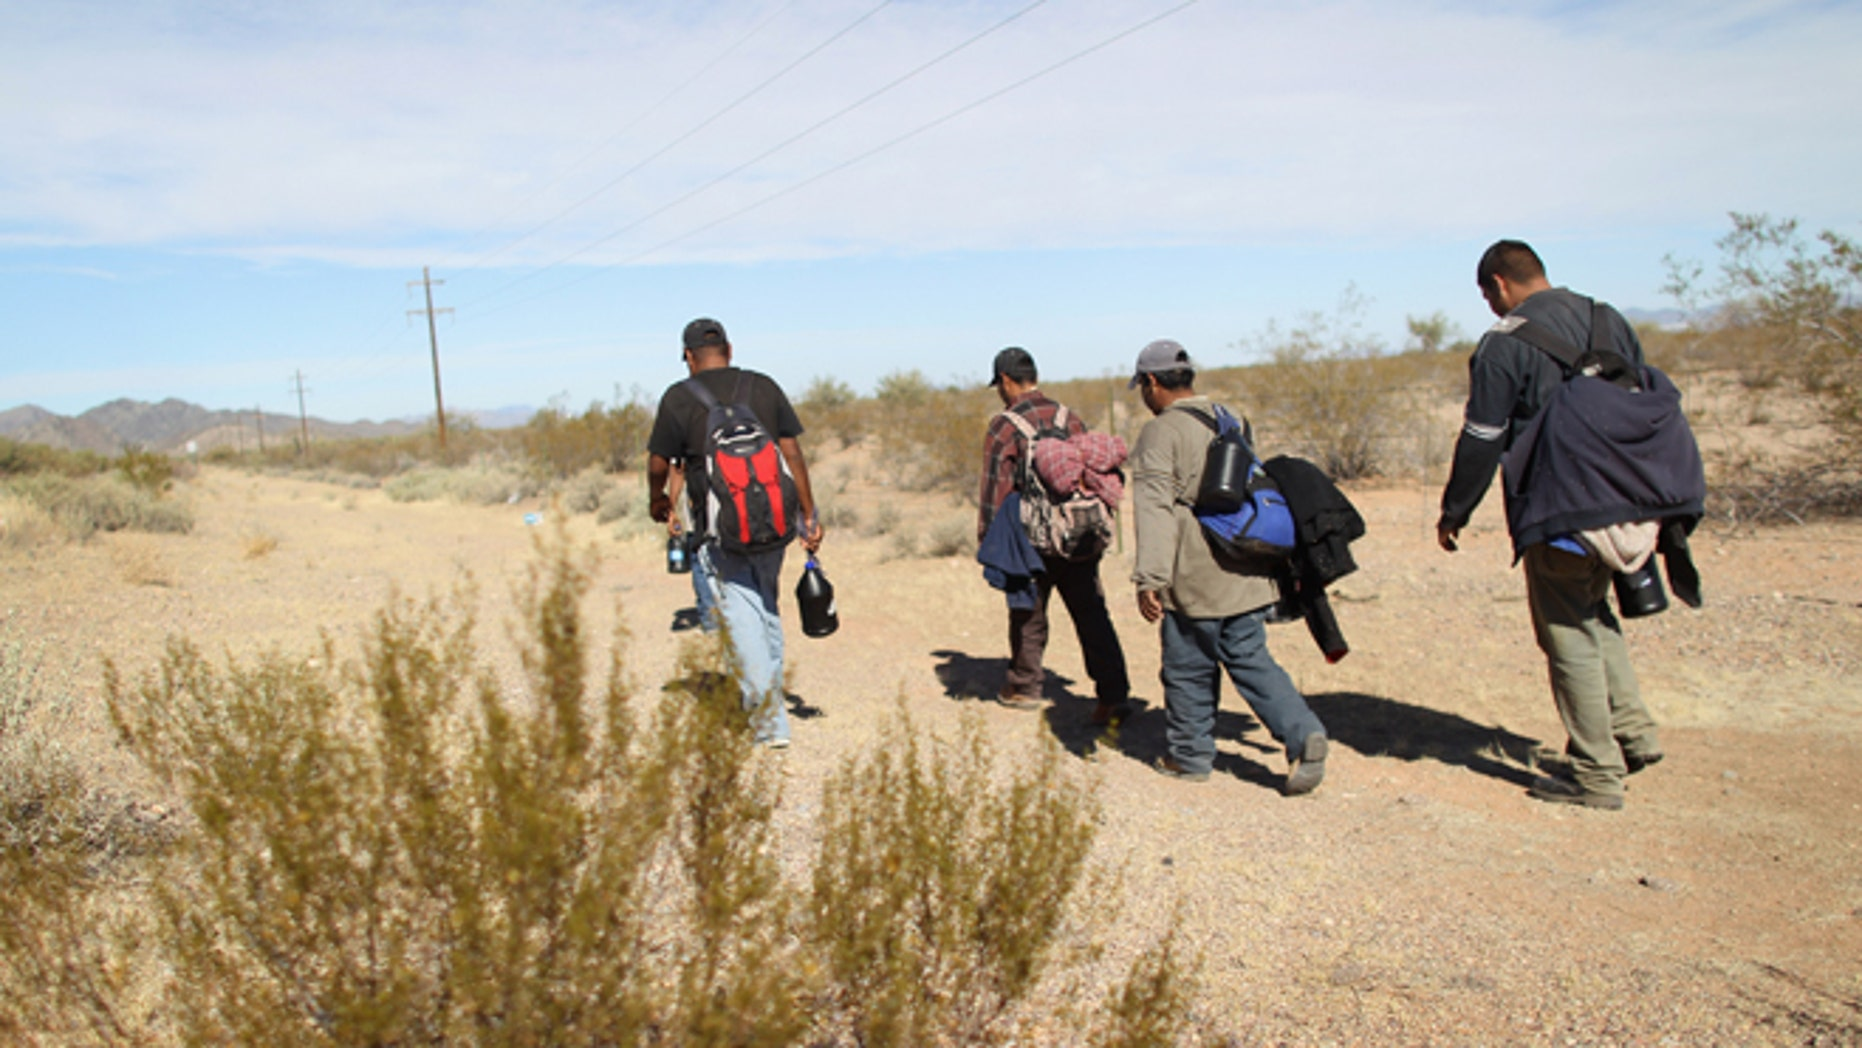 Undocumented Mexican immigrants walk through the Sonoran Desert after illegally crossing the U.S.-Mexico border border on January 19, 2011 into the Tohono O'odham Nation, Arizona. (Photo by John Moore/Getty Images)